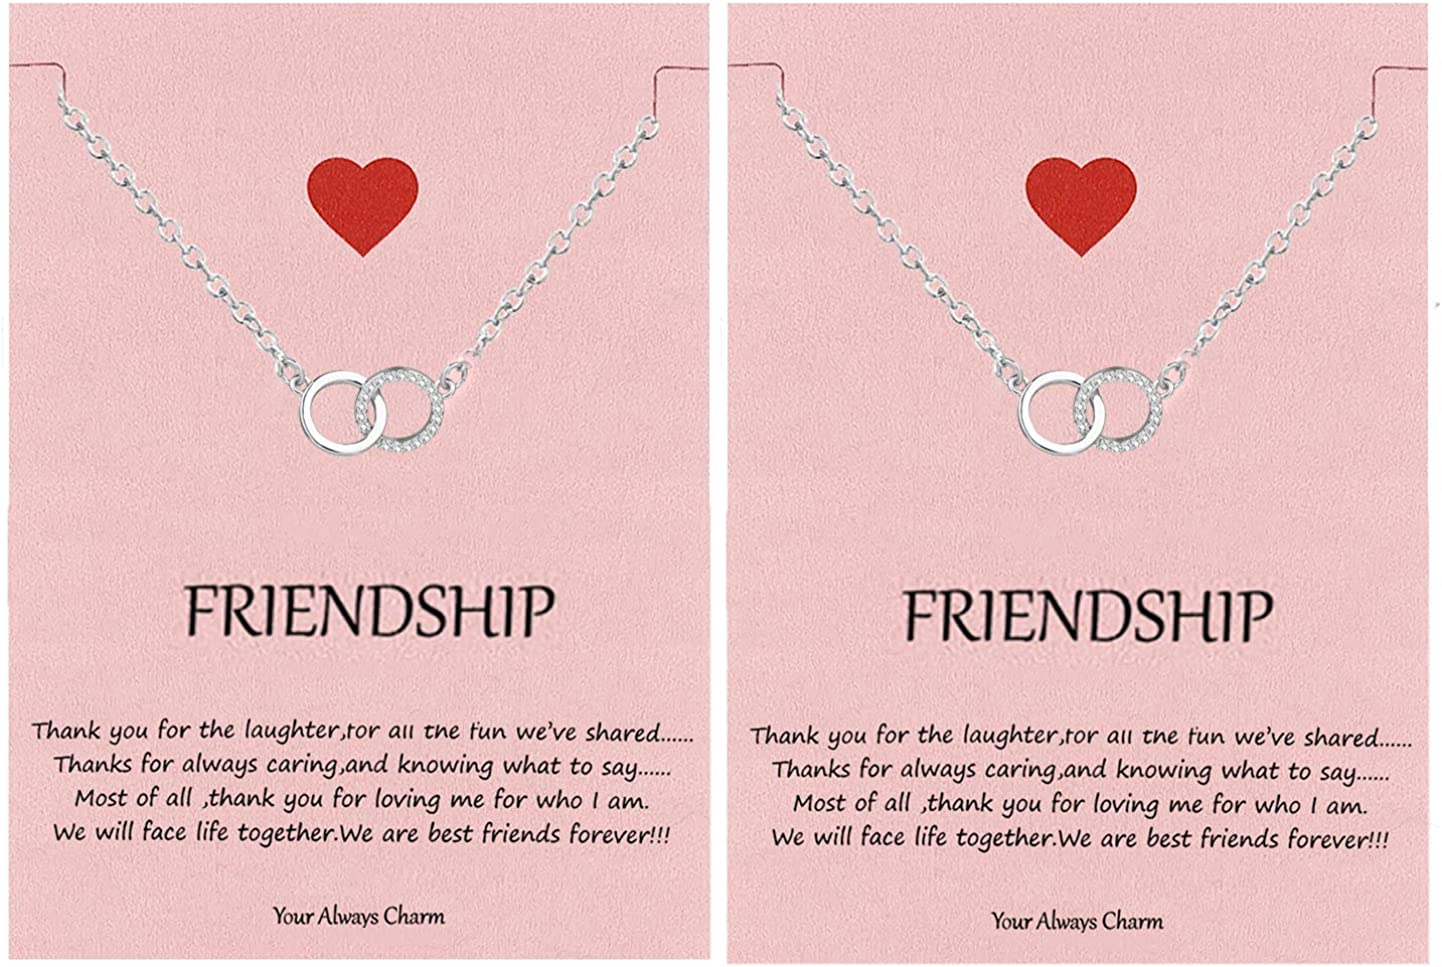 Your Always Charm Best Friend Necklace,Friendship Necklace for 2,Best Friend Jewelry Gifts